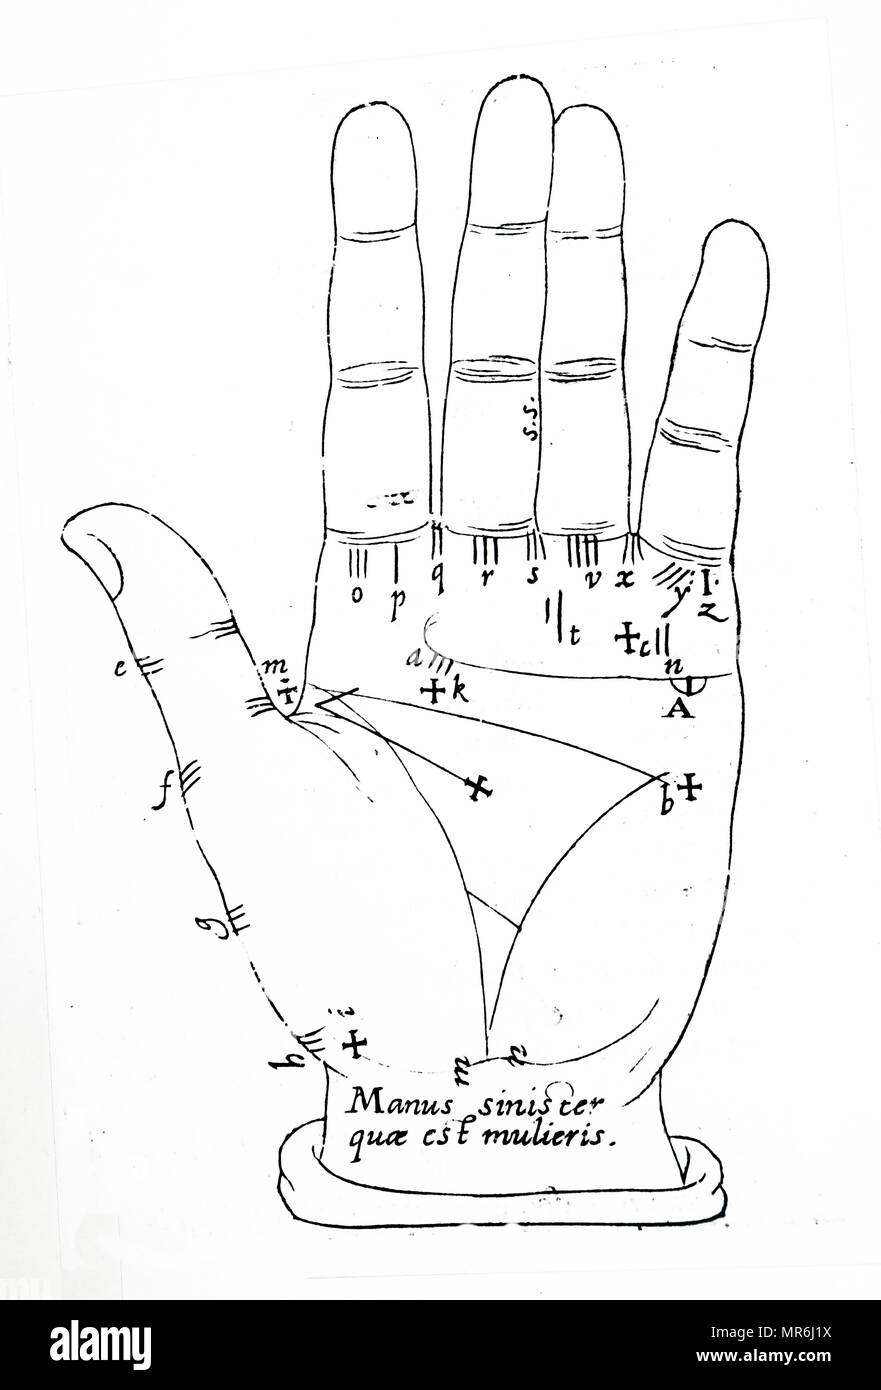 Illustration showing the general lines of the left hand of a female. The lines are created by the movement of the hand and joints. Dated between 1617-1619 - Stock Image